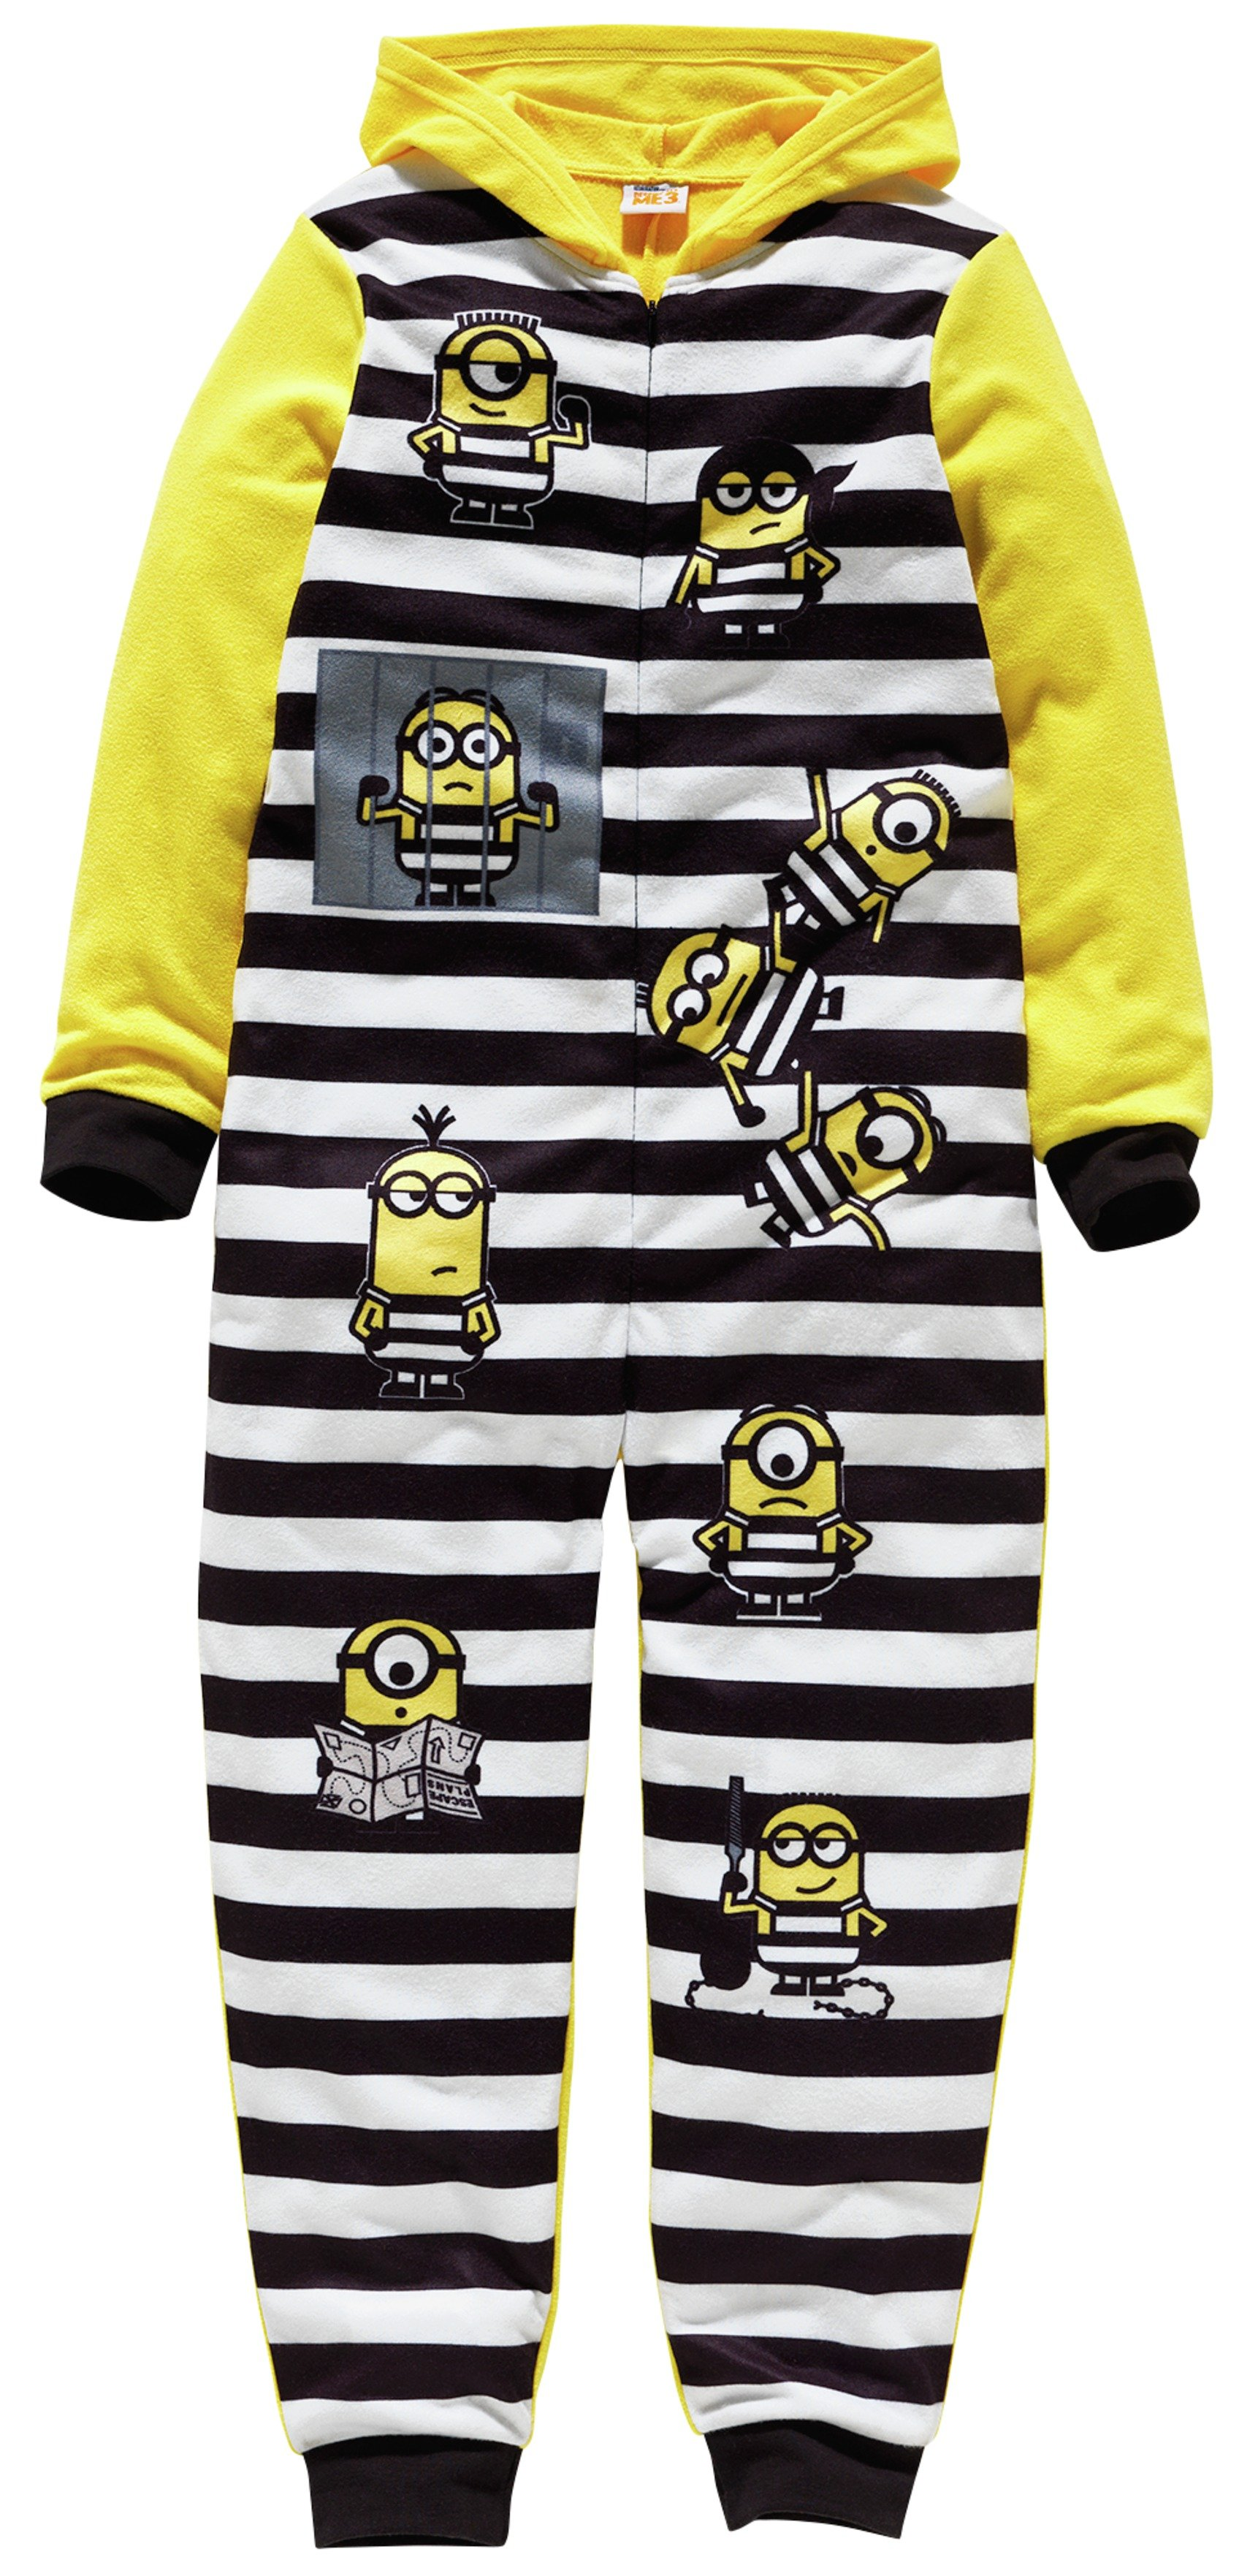 'Minions Yellow Onesie - 7-8 Years